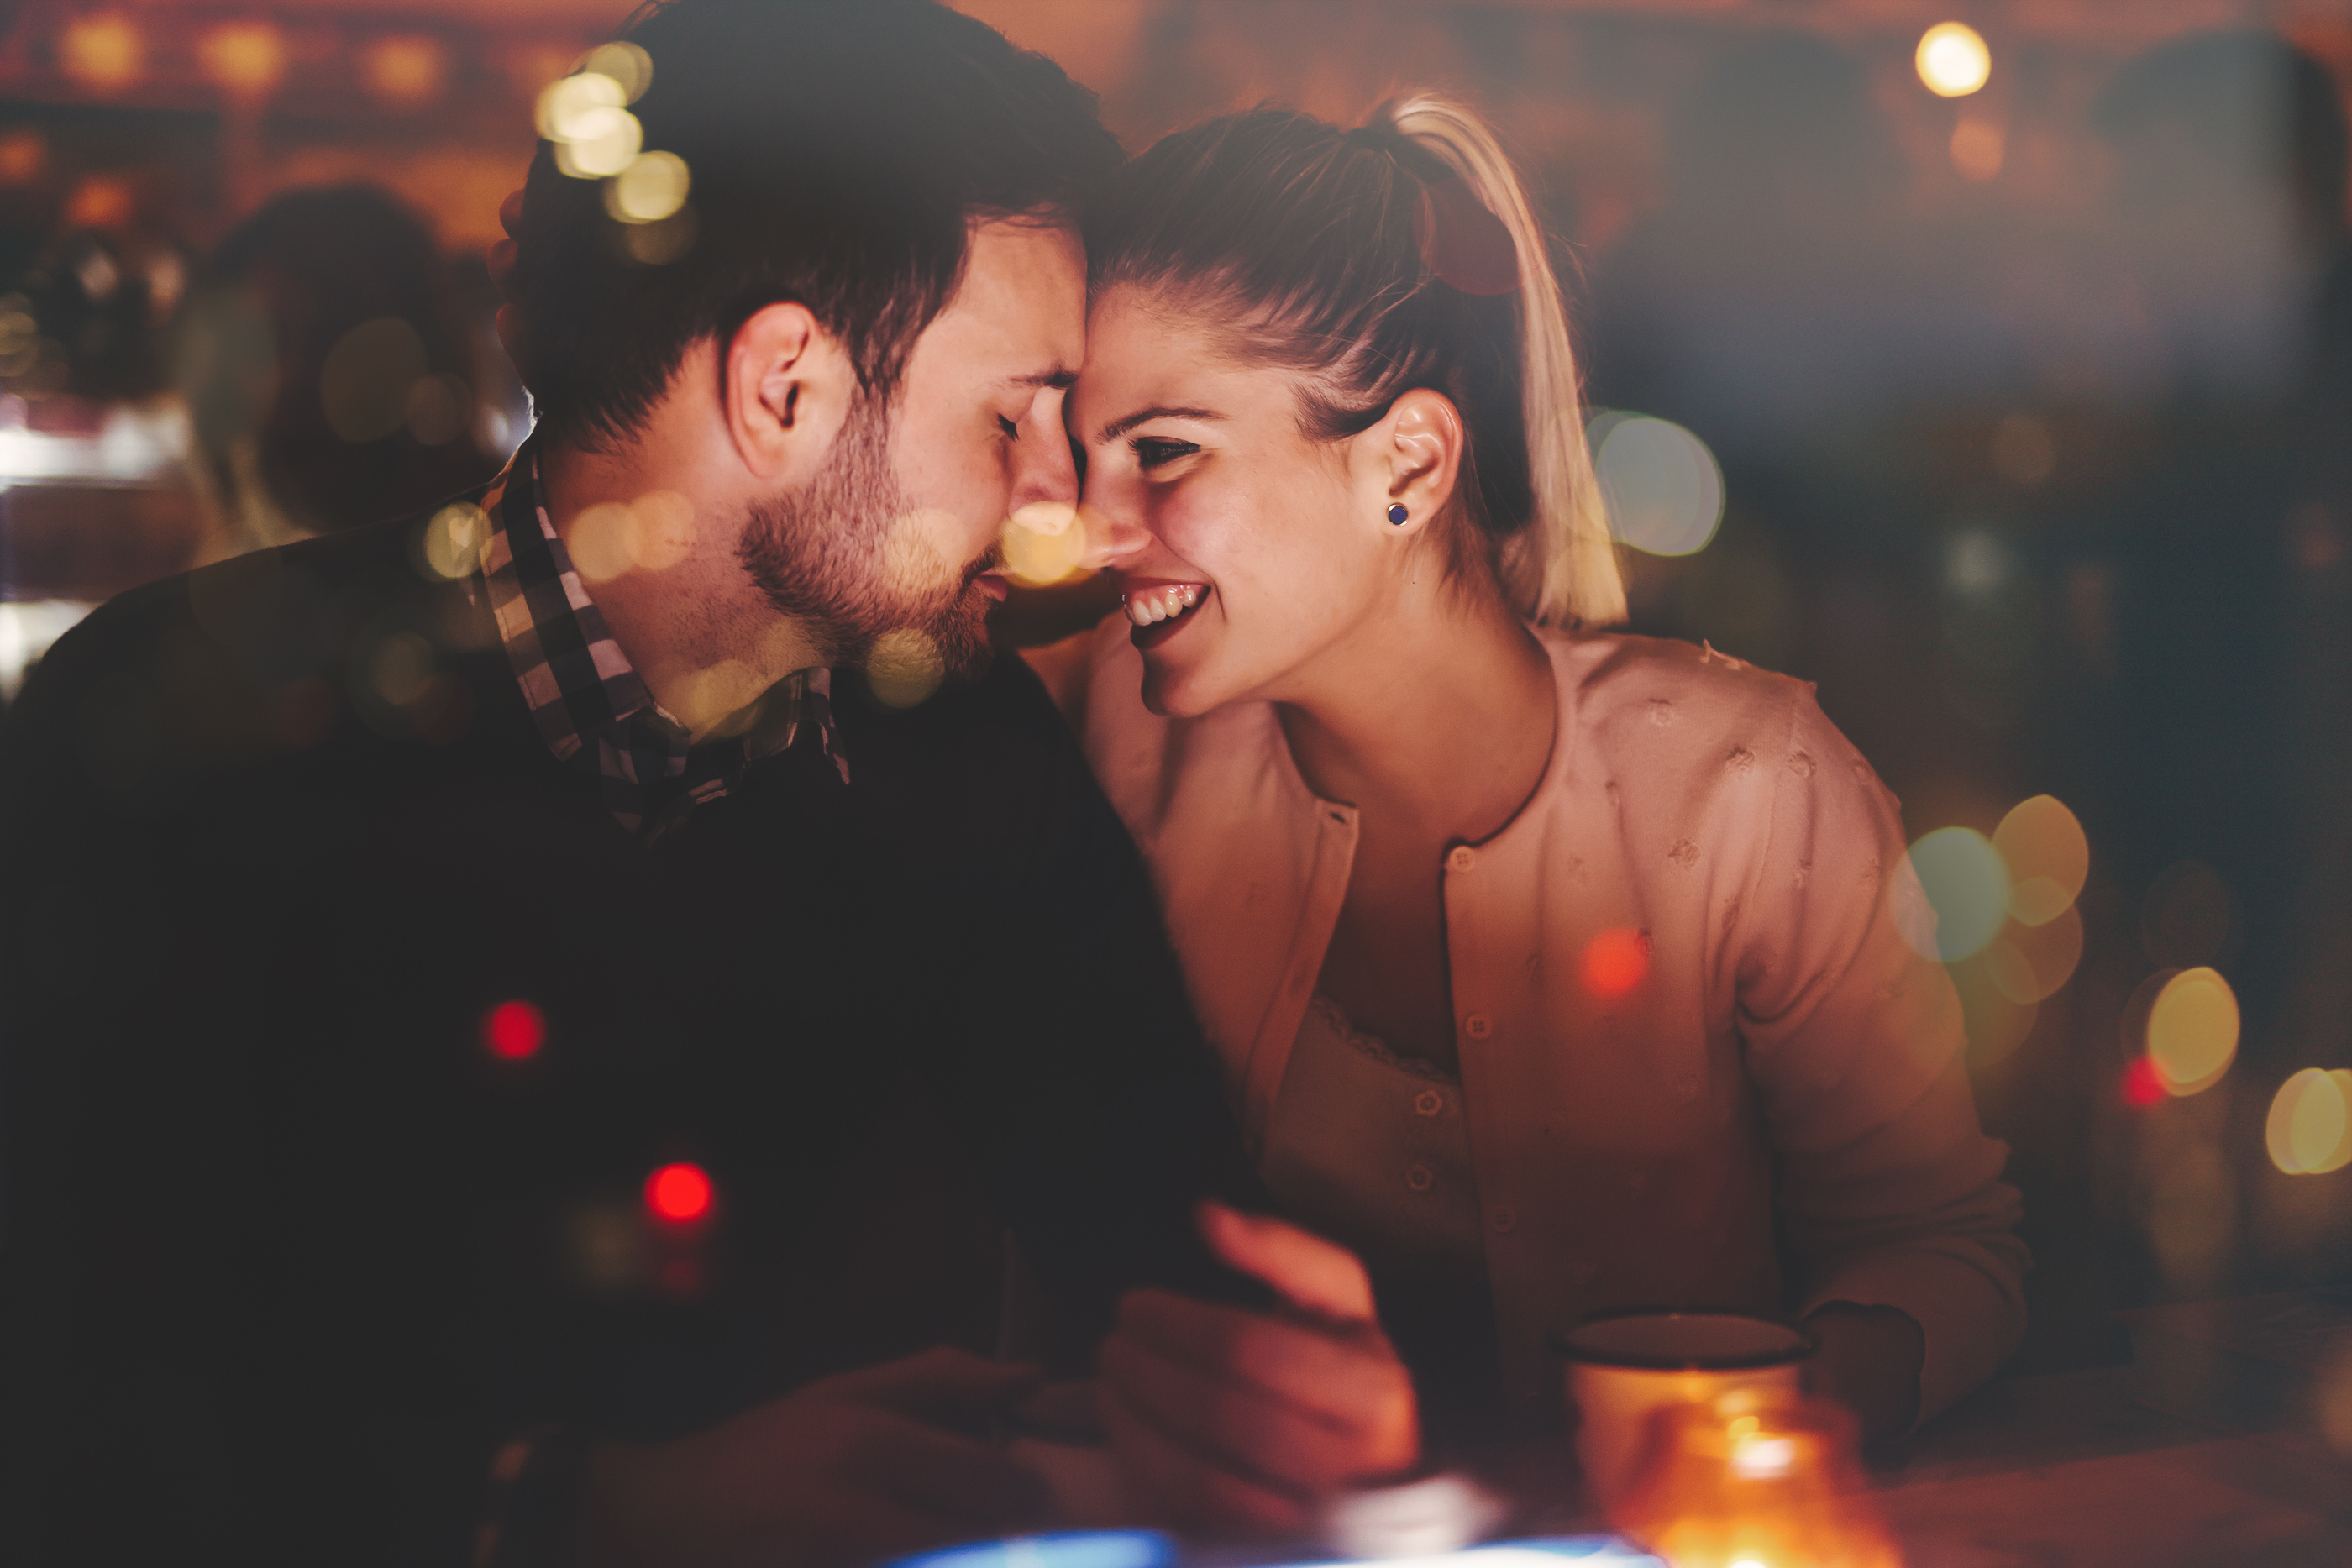 awesome ways you can save money on date night